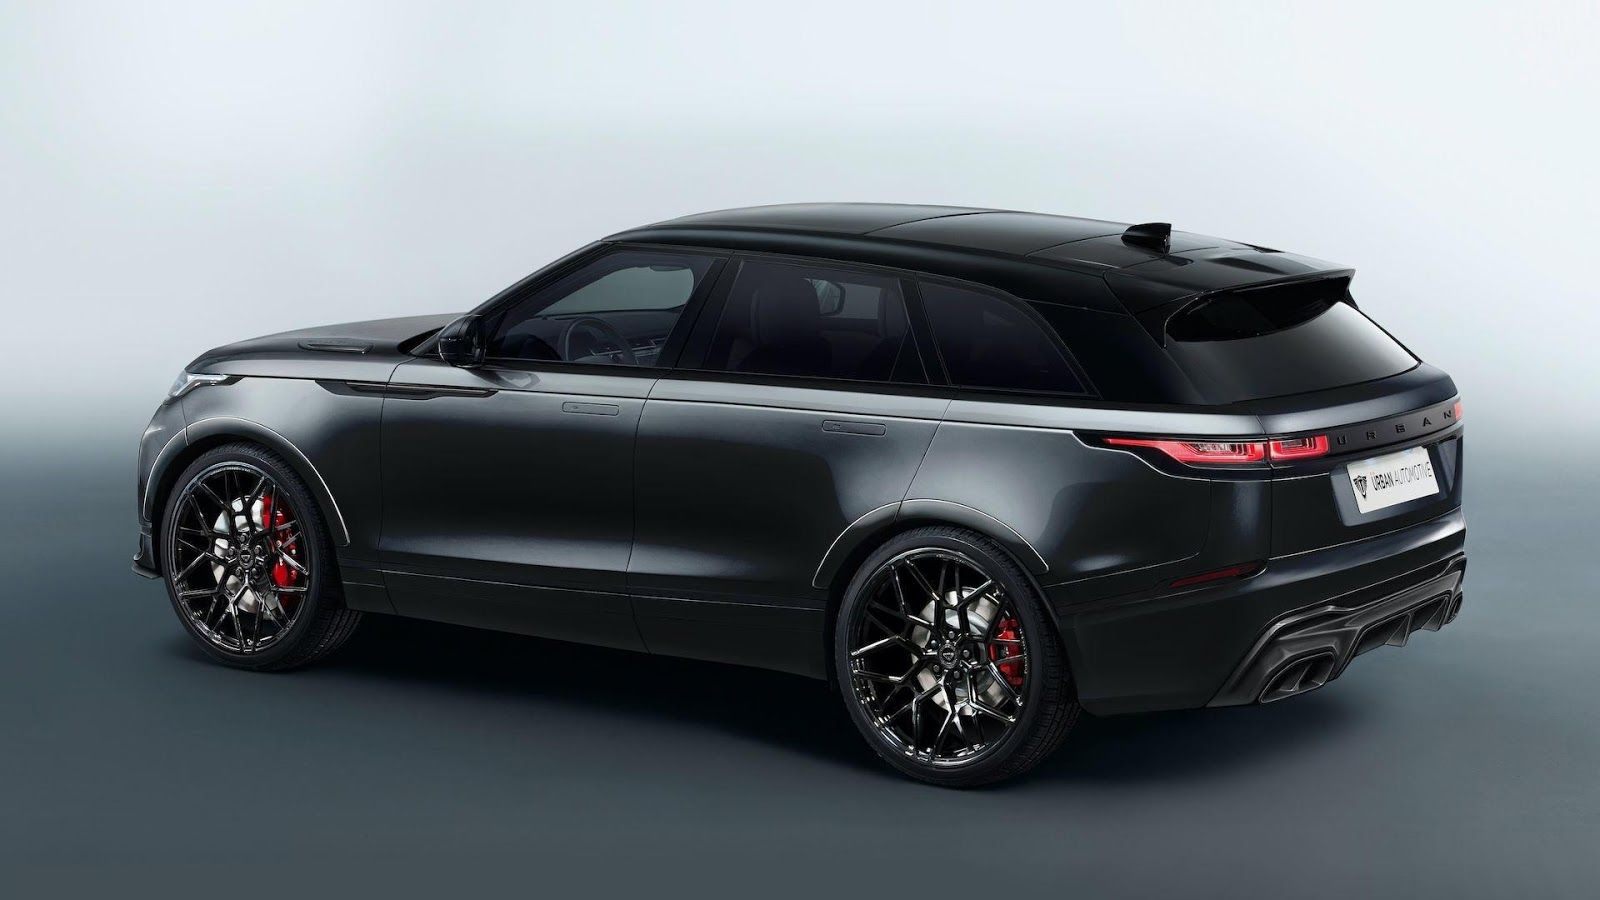 Urban Automotive S Range Rover Velar Is Almost An Svr Carscoops Luxury Cars Range Rover Range Rover Land Rover